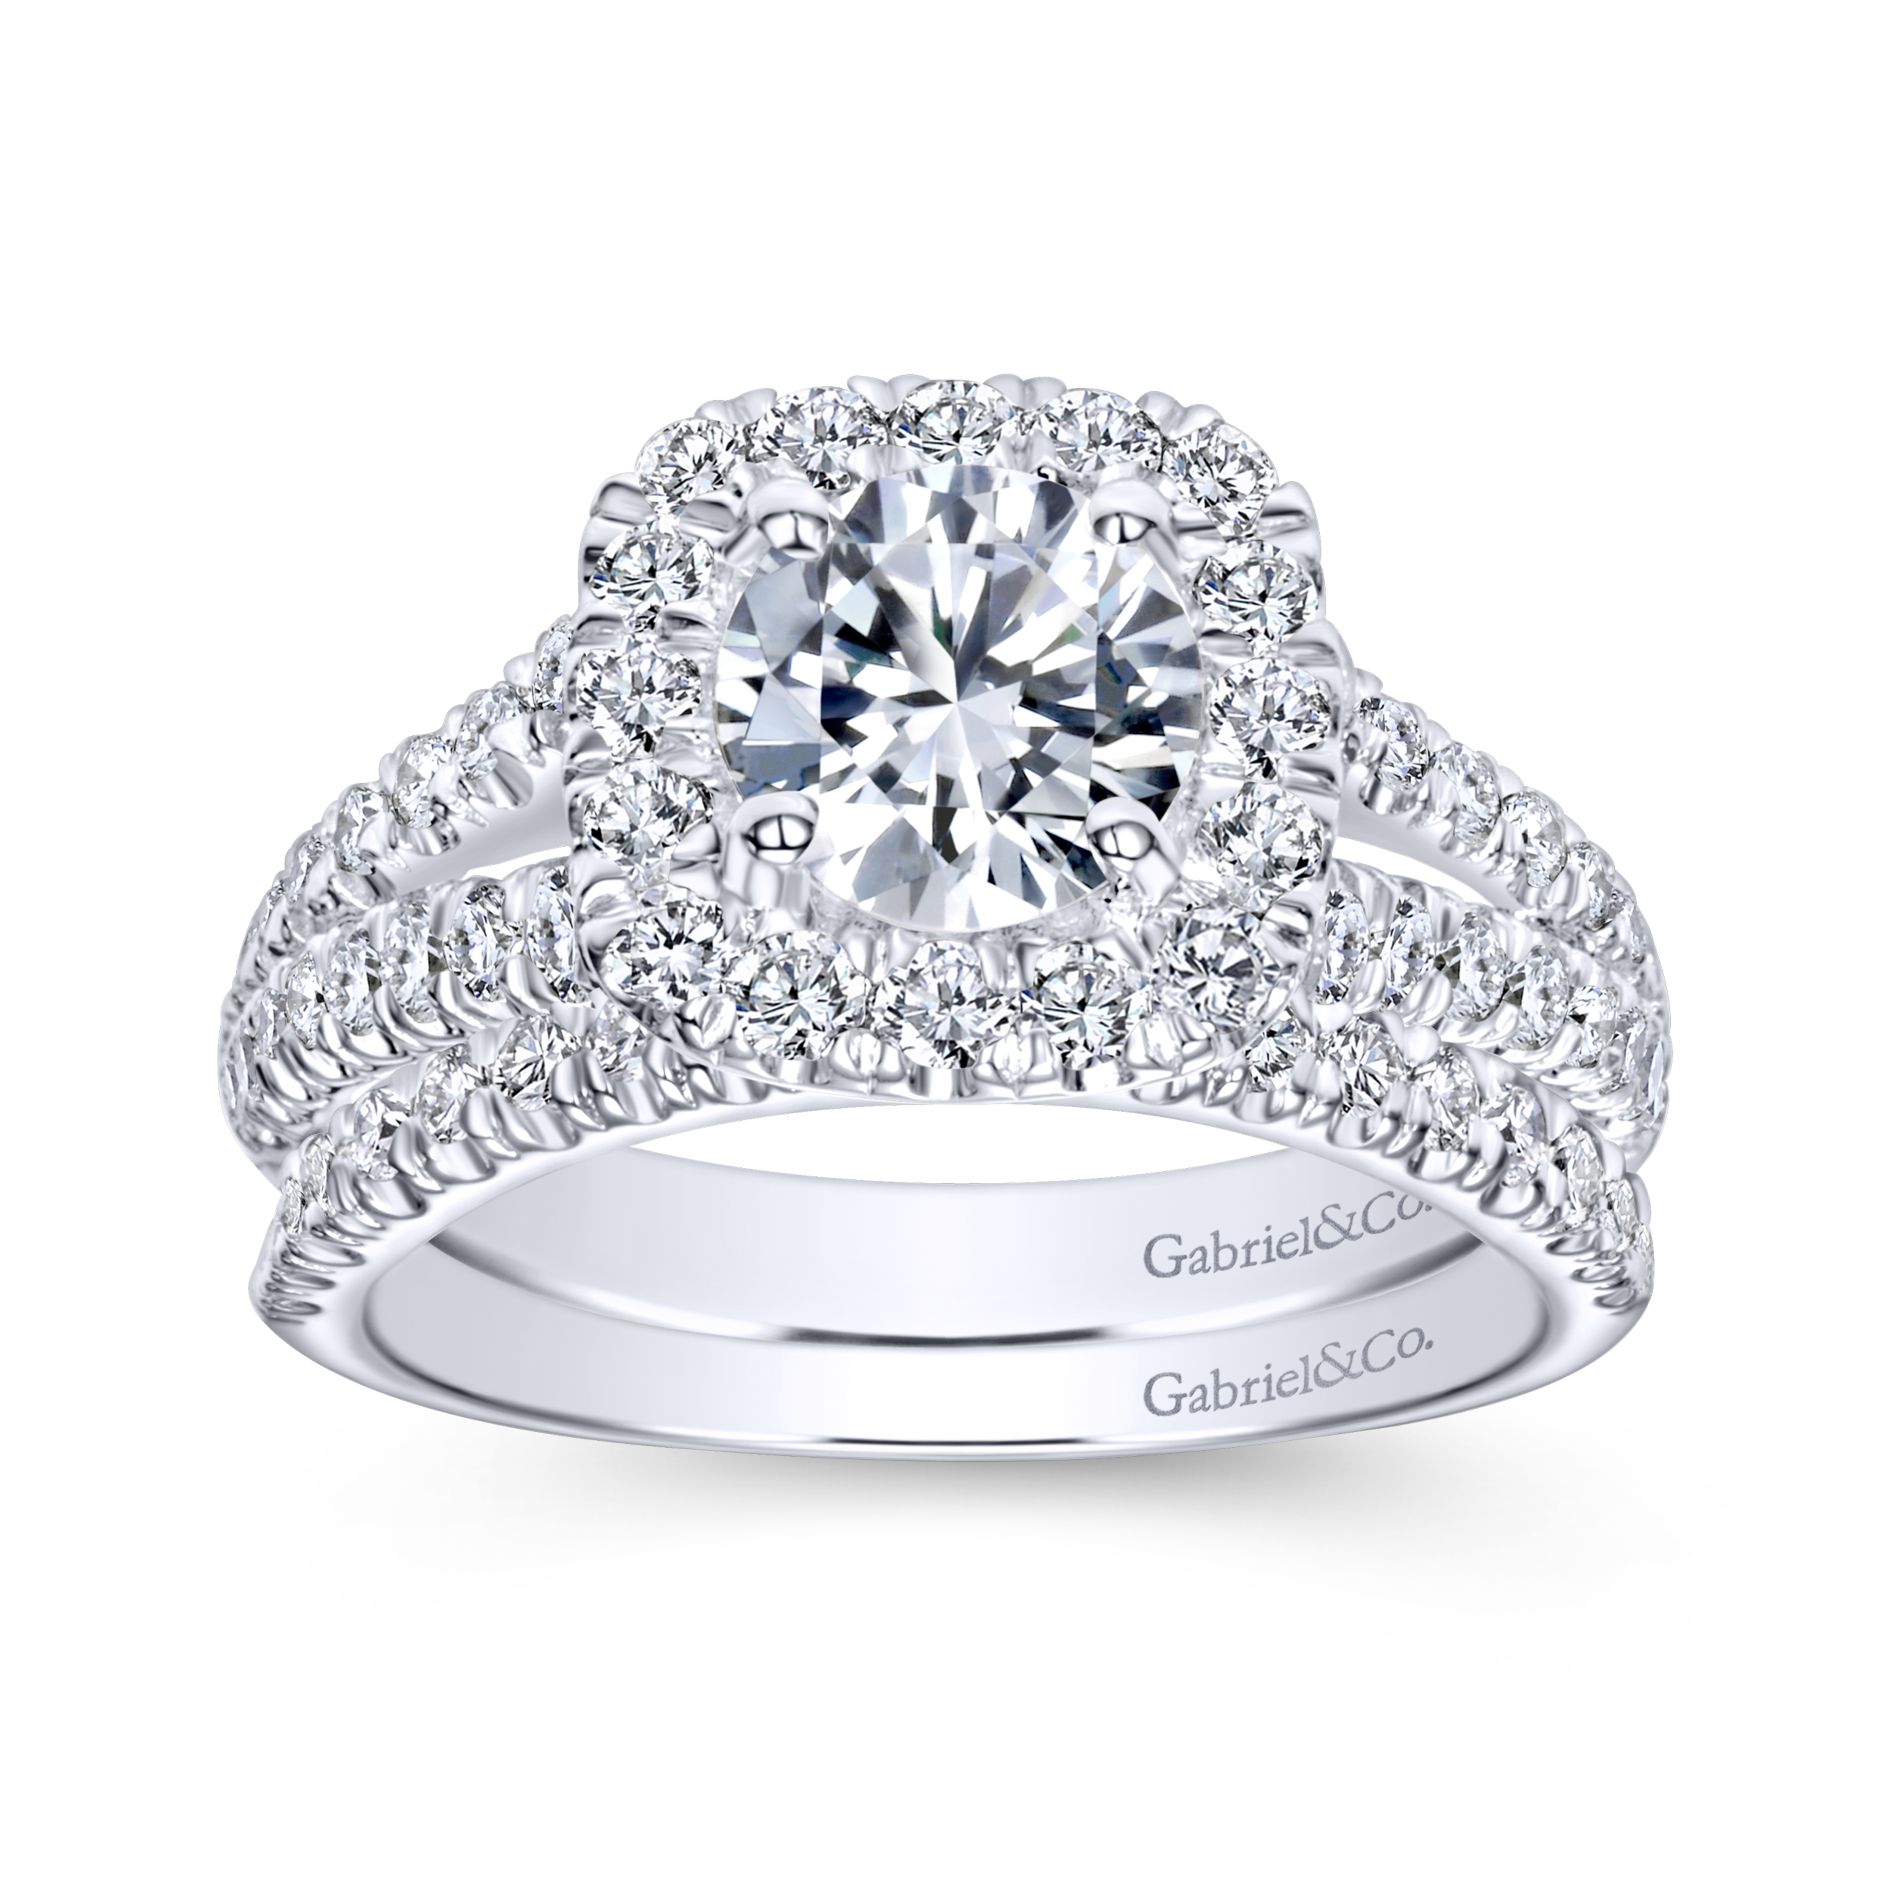 14K White Gold Round Halo Diamond Engagement Ring by Gabriel & Co